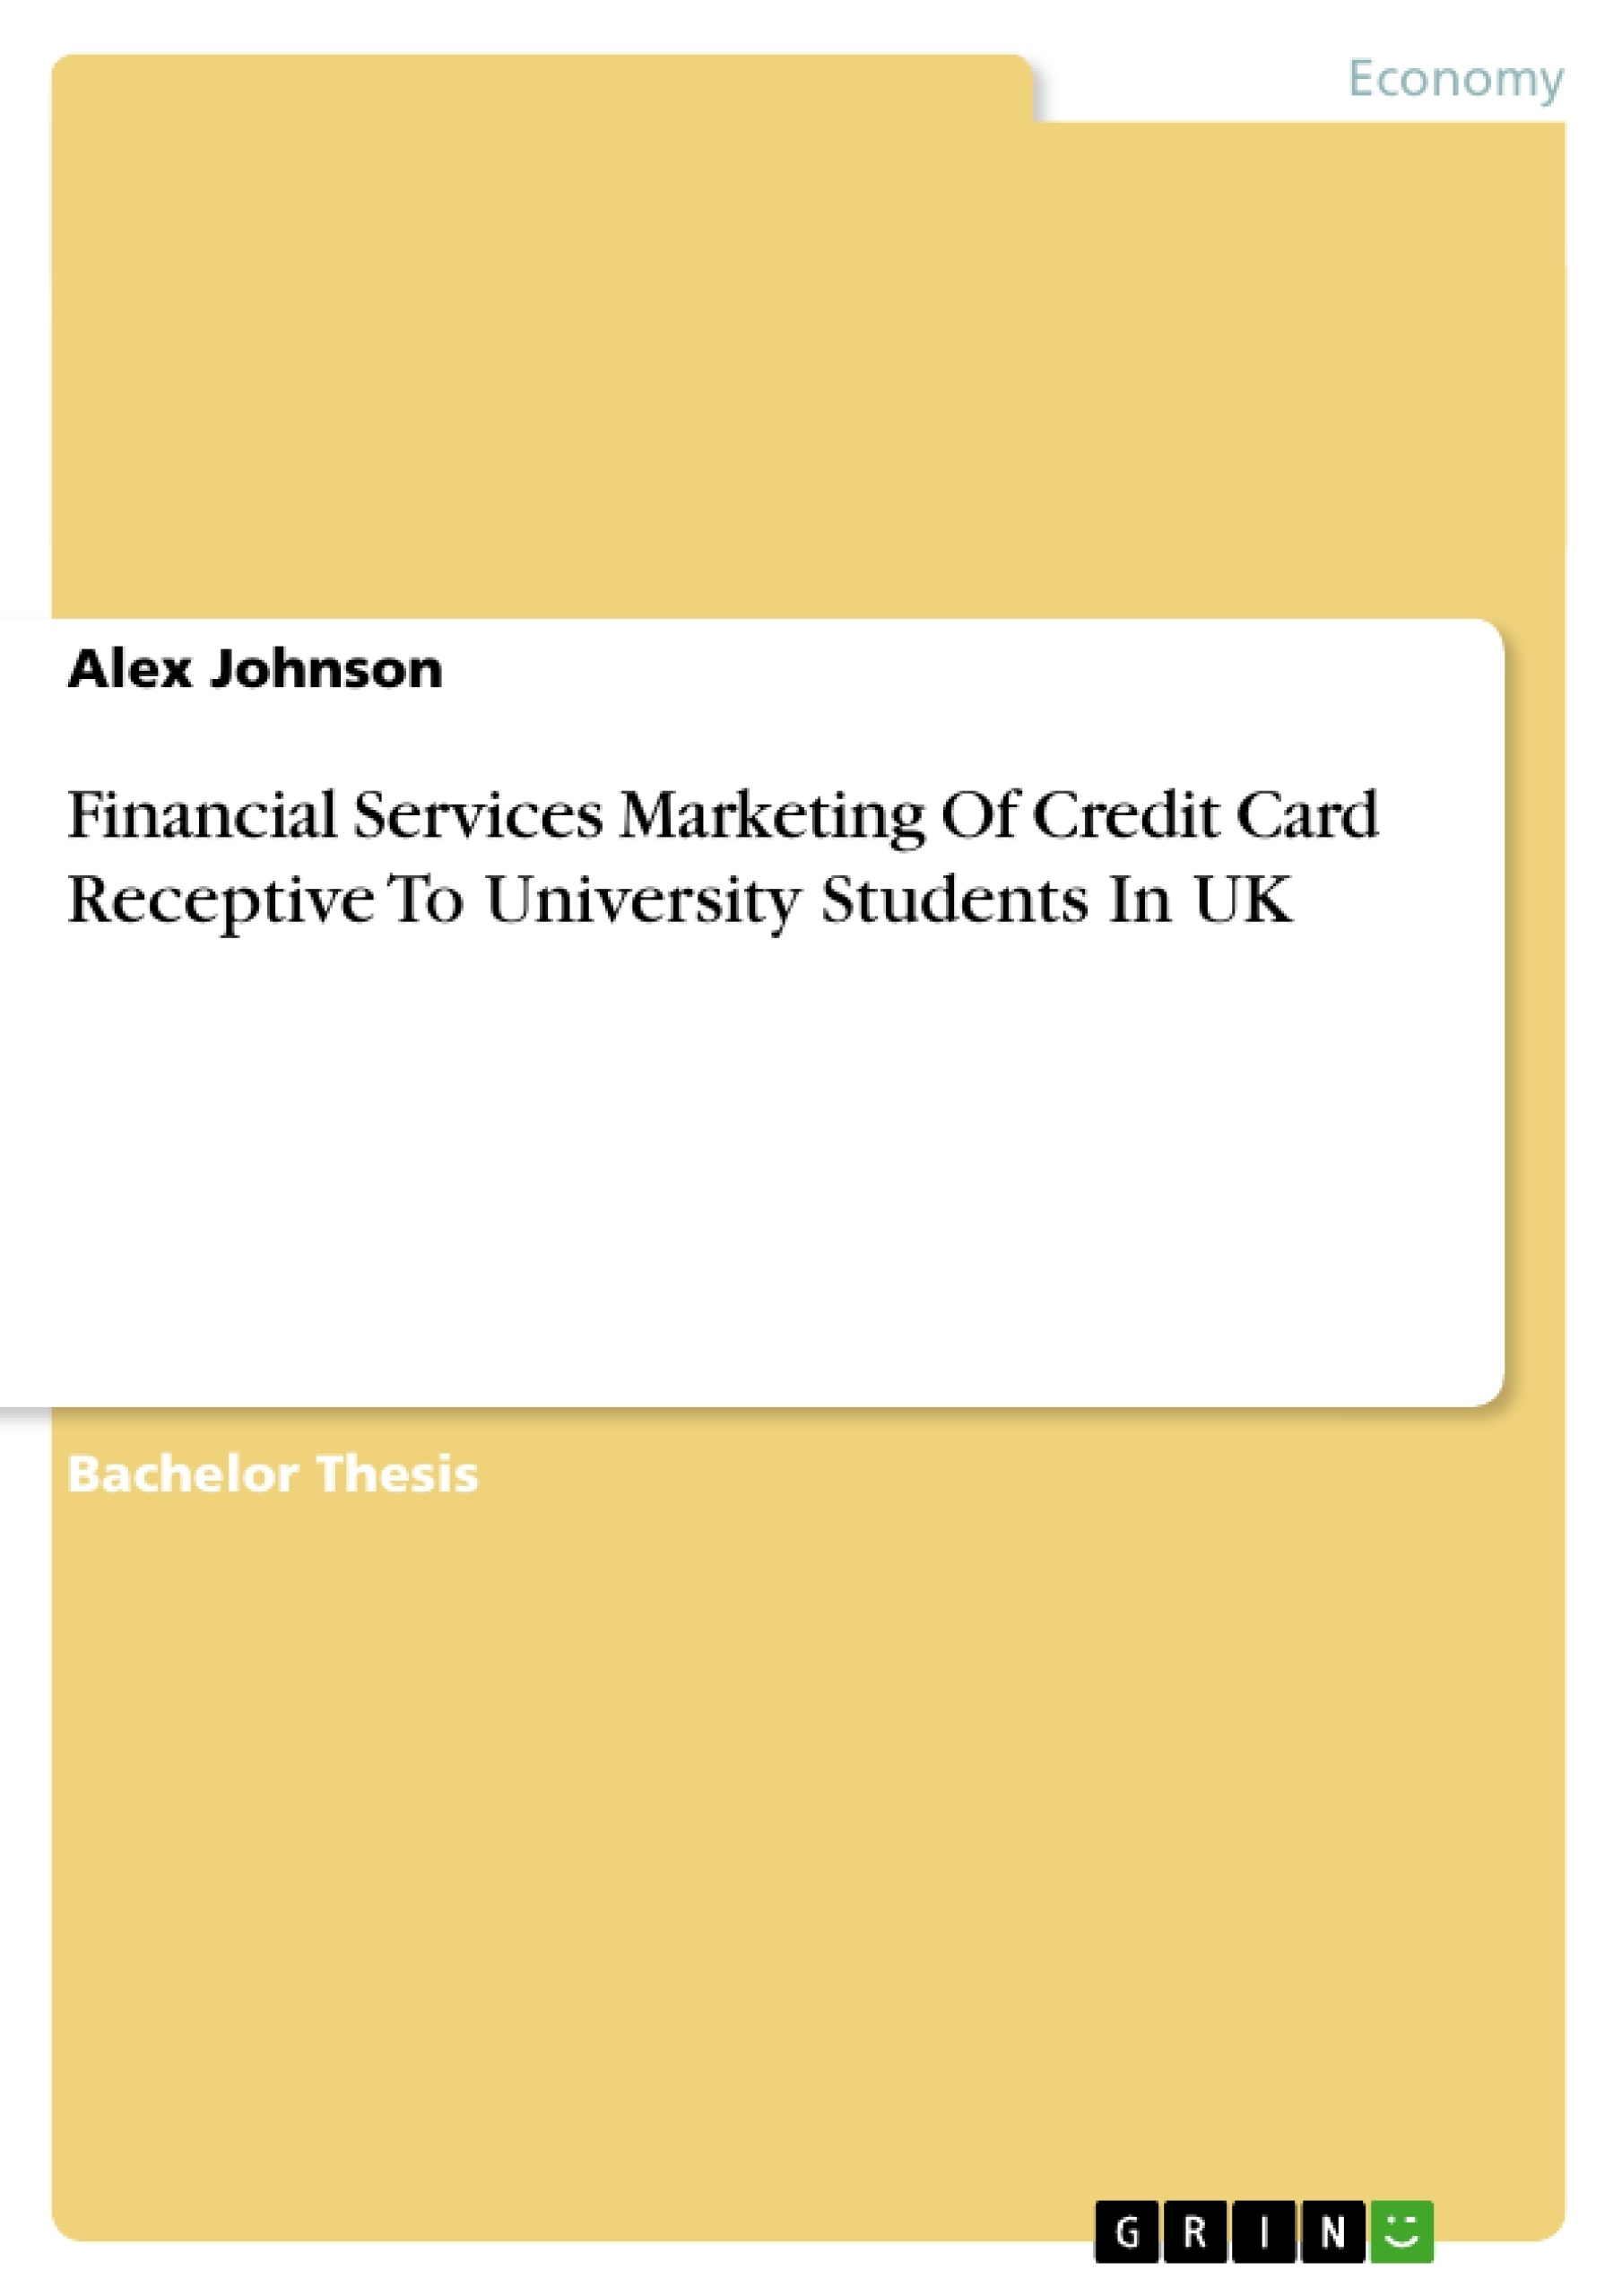 Title: Financial Services Marketing Of Credit Card Receptive To University Students In UK